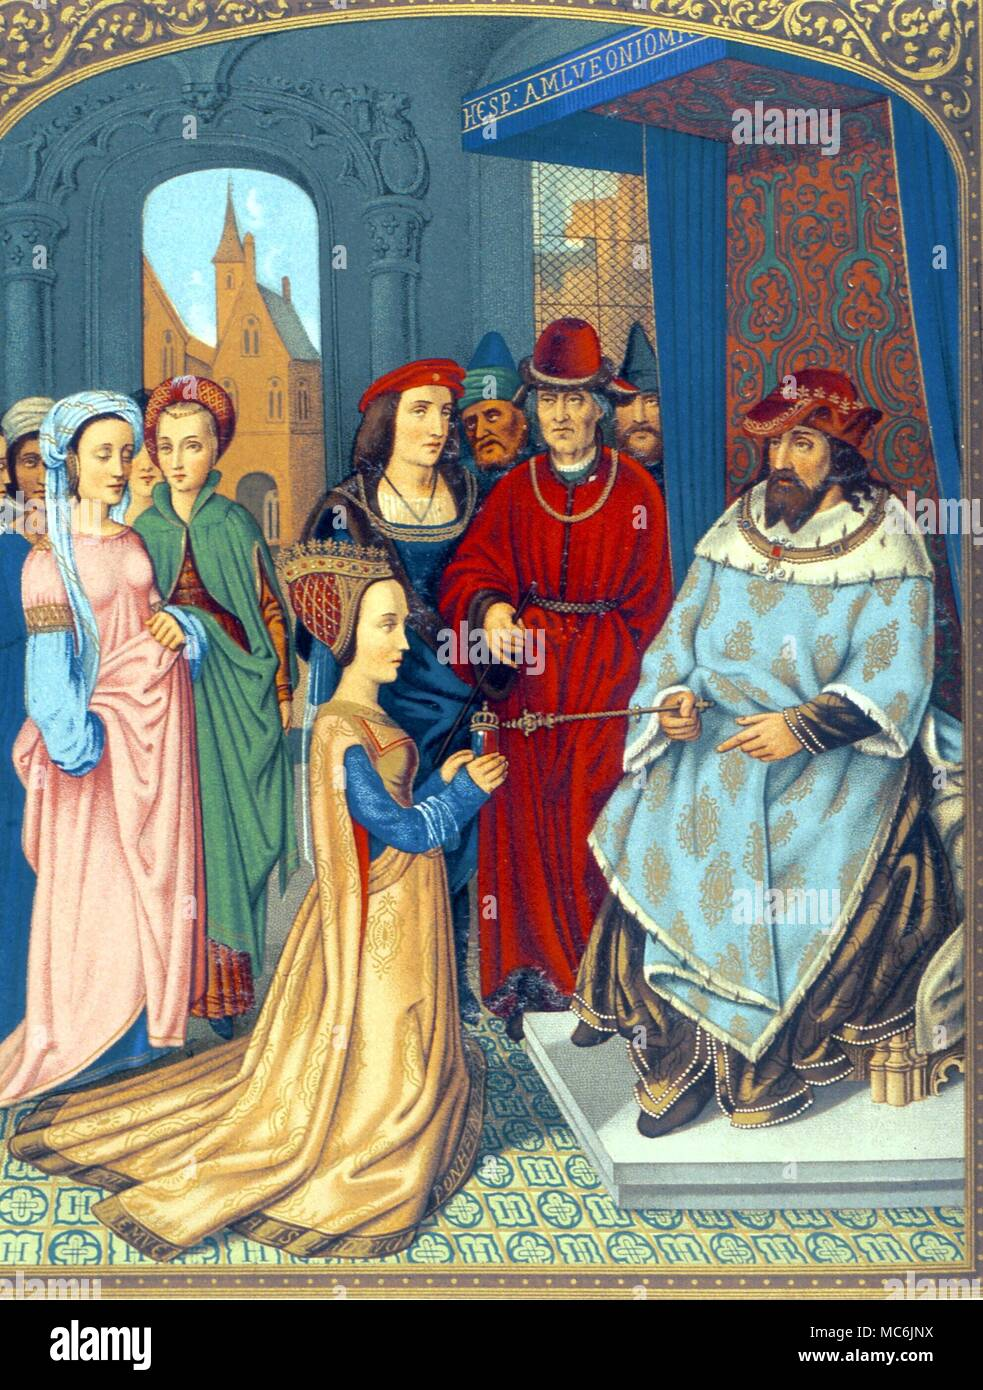 OCCULTISTS - KING SOLOMON.  Solomon being presented  to the Queen of Sheba.  Chromolithographic facsimile from the breviary of Cardinal Grimandi (att. to Memling), 15C.  After the 1876 edition of Lacroix, 'Middle Ages' - Stock Image